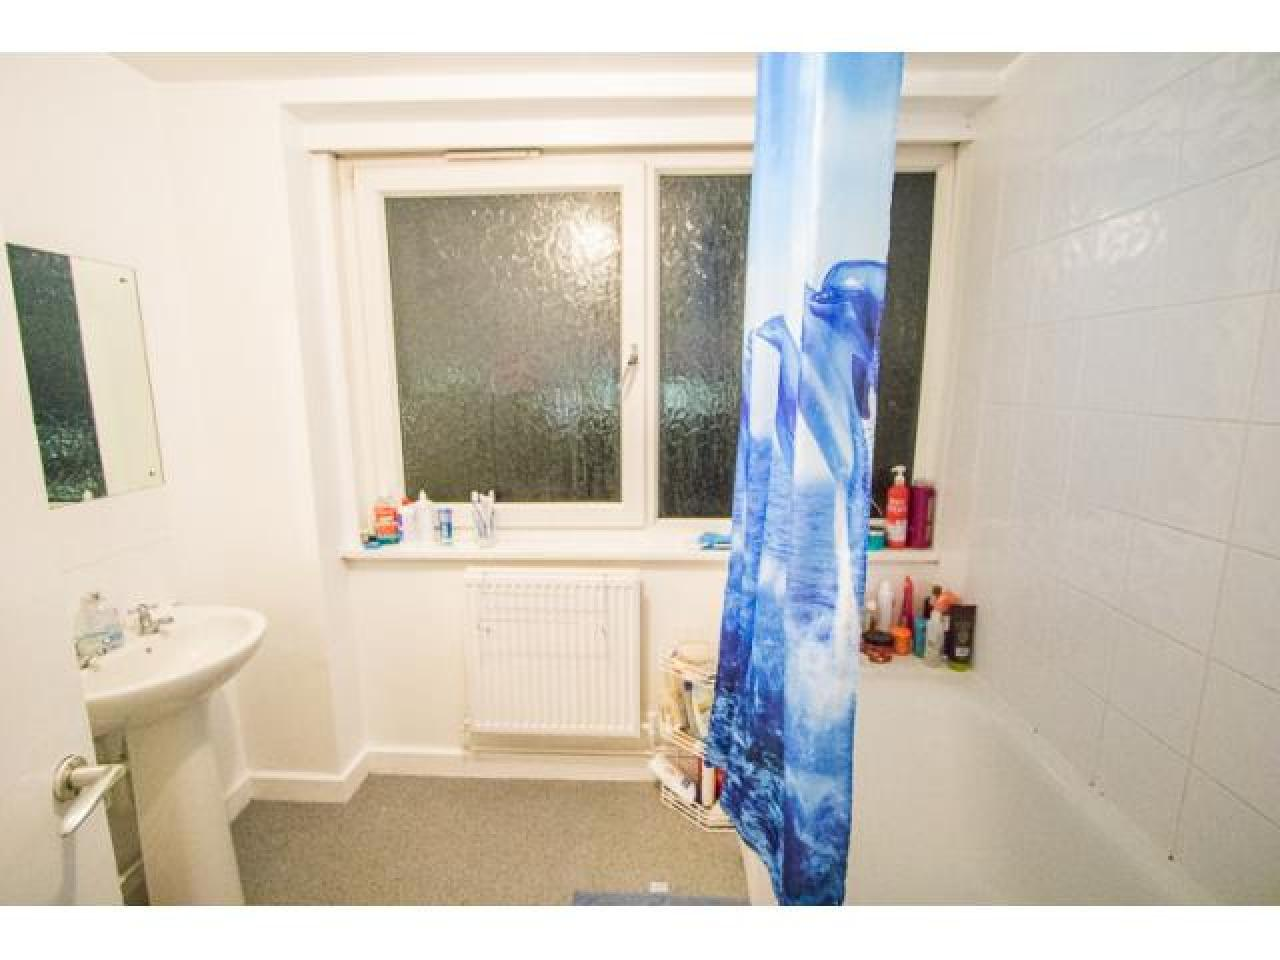 Double комната в аренду, £580/month, all bills included, Bethnal Green, London, ladies only - 2